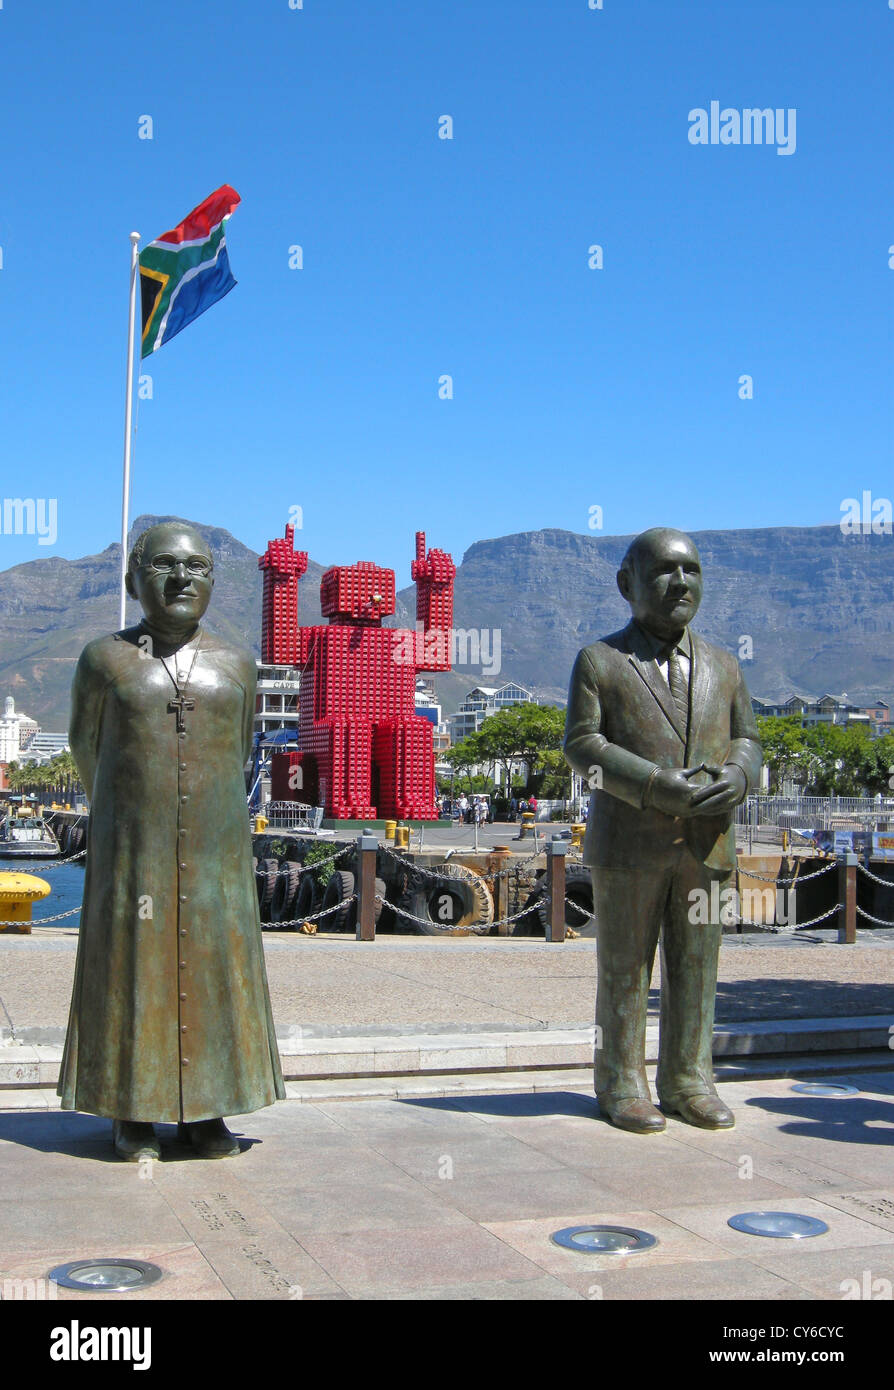 Tutu, Coca Cola man and De Klerk in the port at waterfront of Cape town in South africa with flag of South Africa, - Stock Image